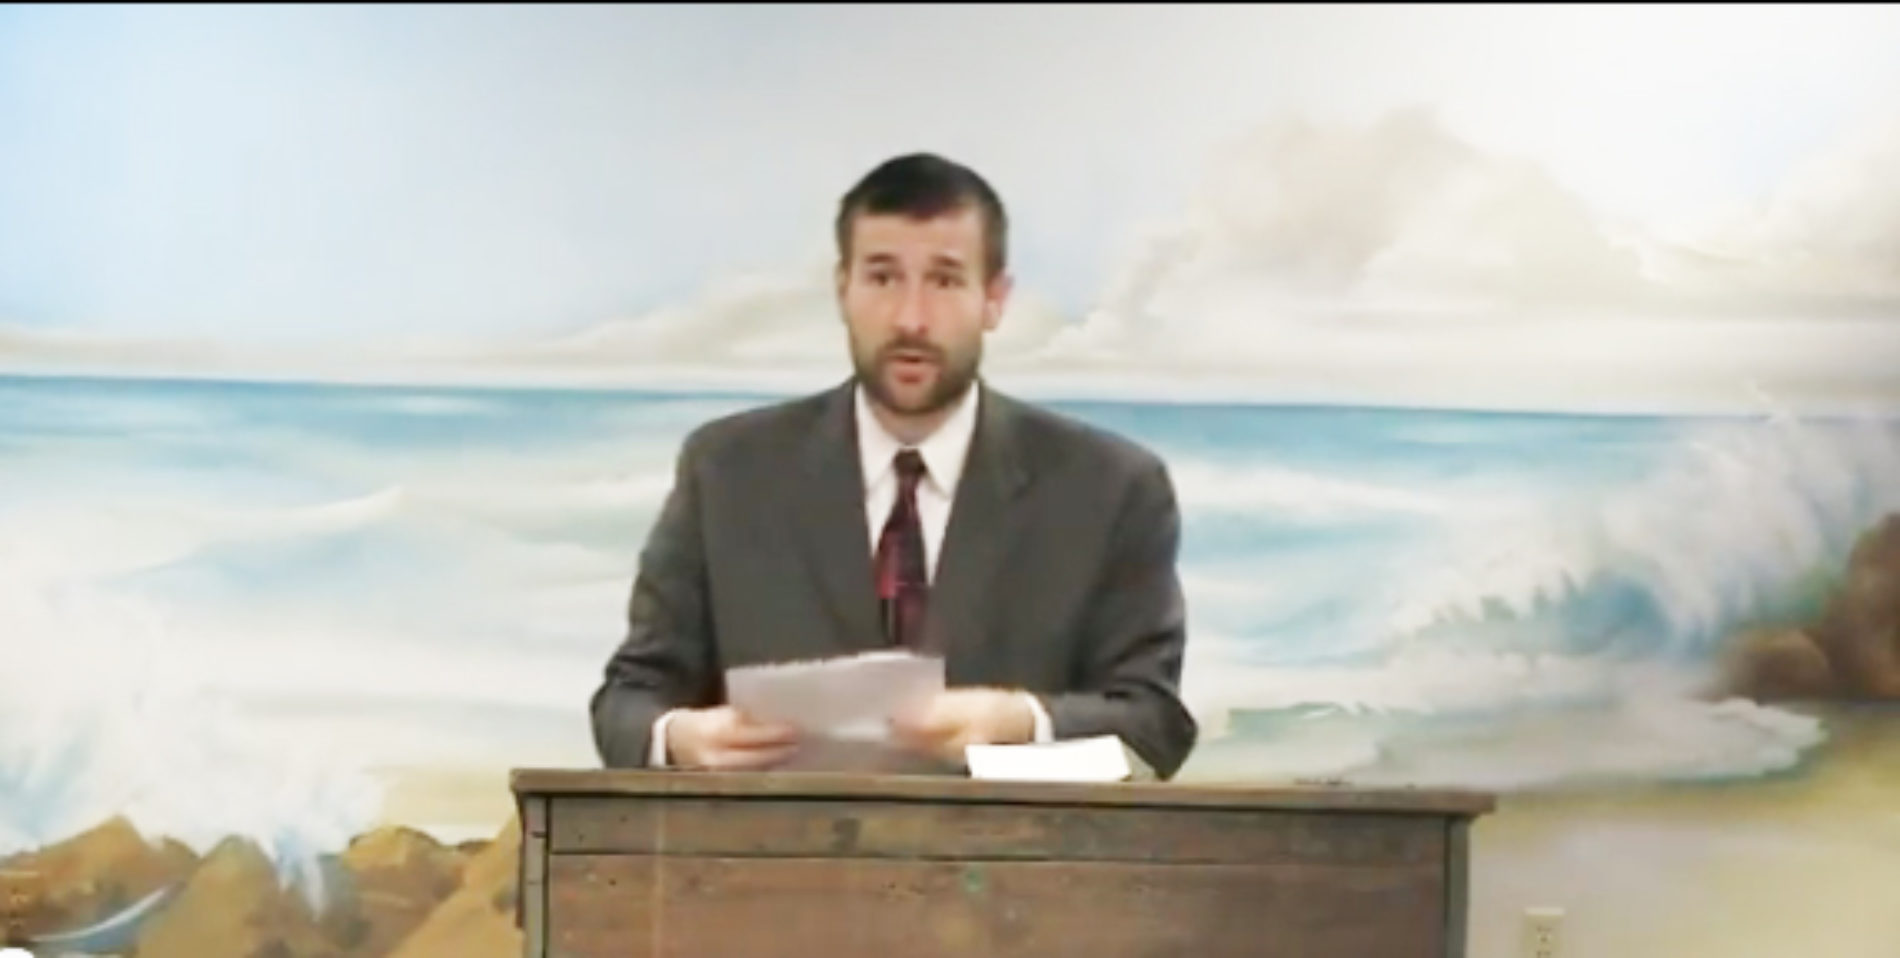 Pastor's 'Biblical' Solution To Homosexuality Is Mass Killings